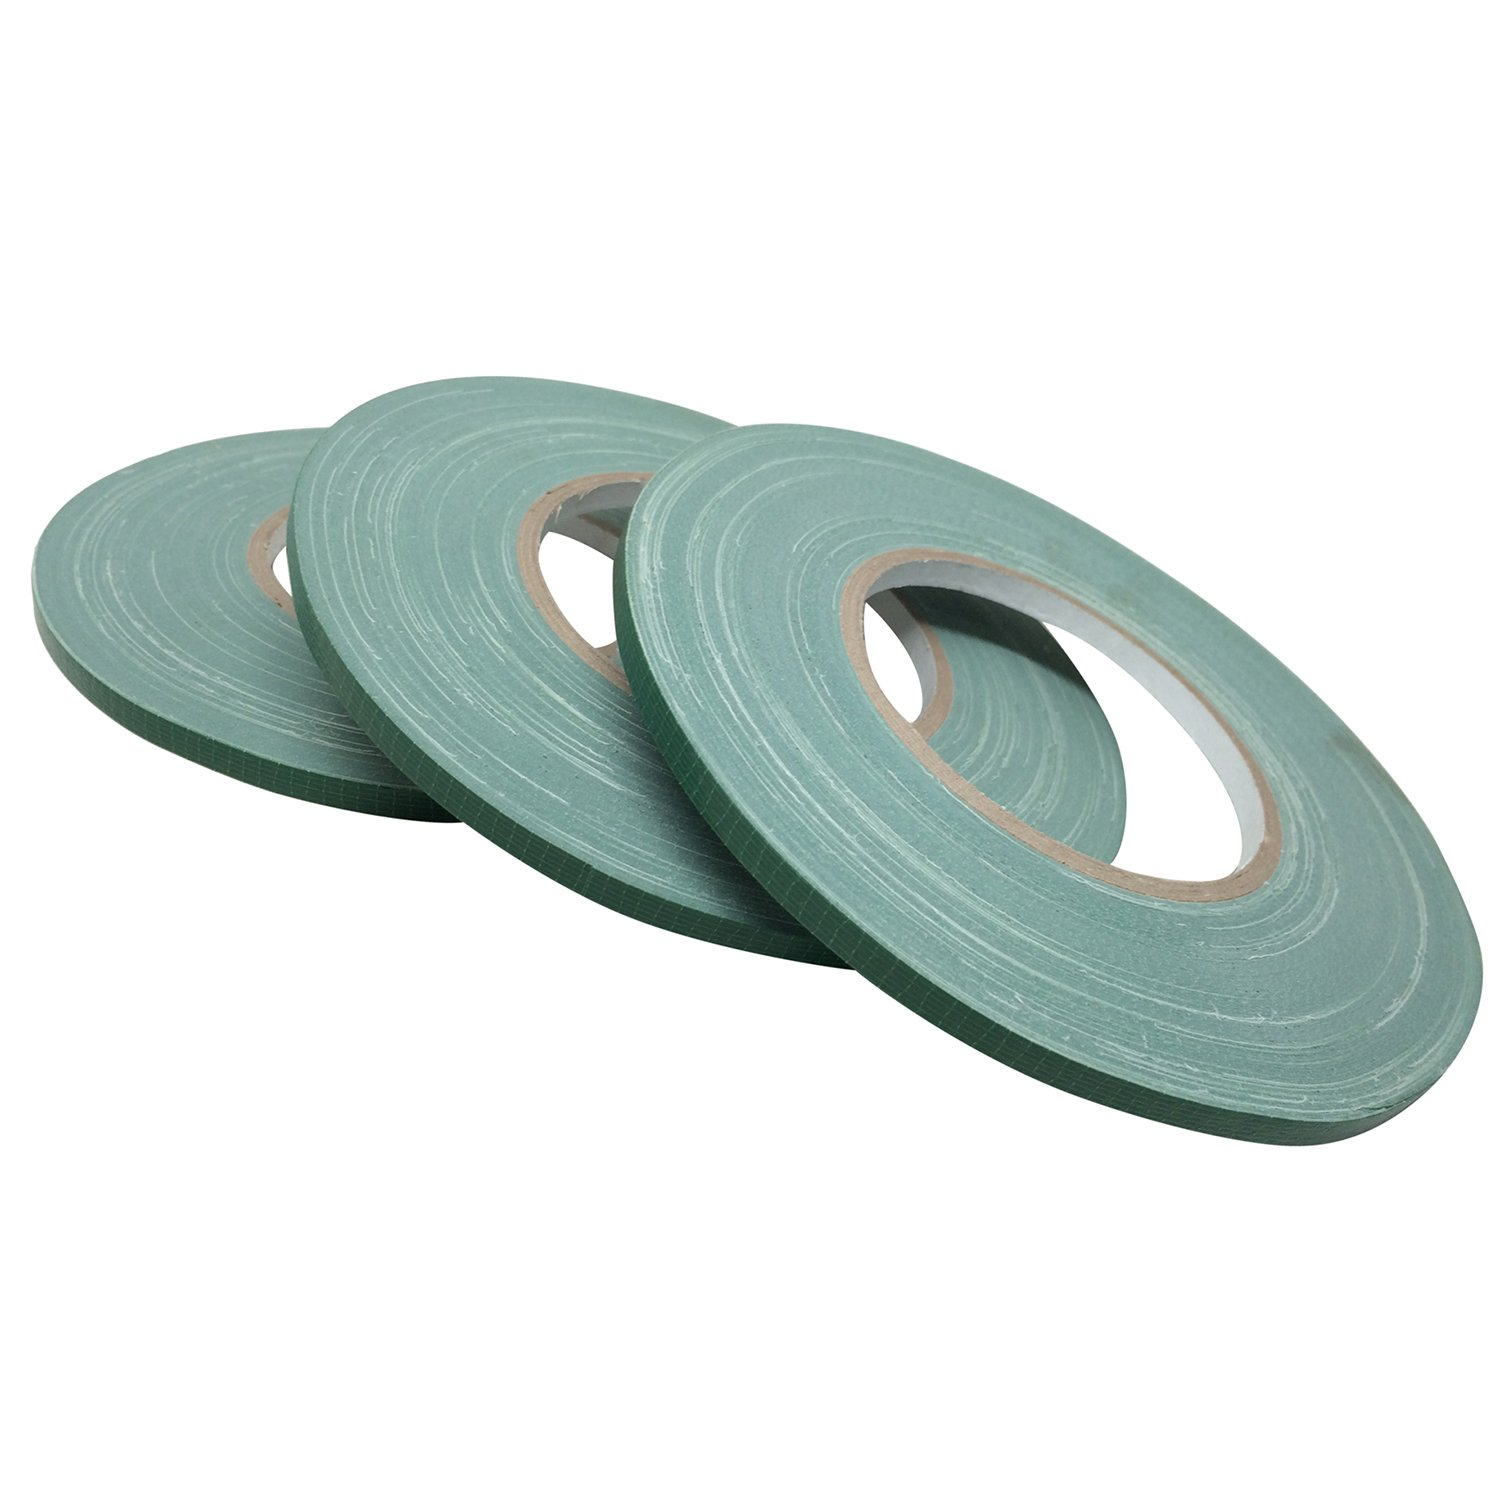 "Floral Tape Green, Flower Wrap Adhesive Waterproof Tape for Bouquets by Royal Imports 0.5"" (60 Yd/180 Ft) - 3 Rolls Bulk"